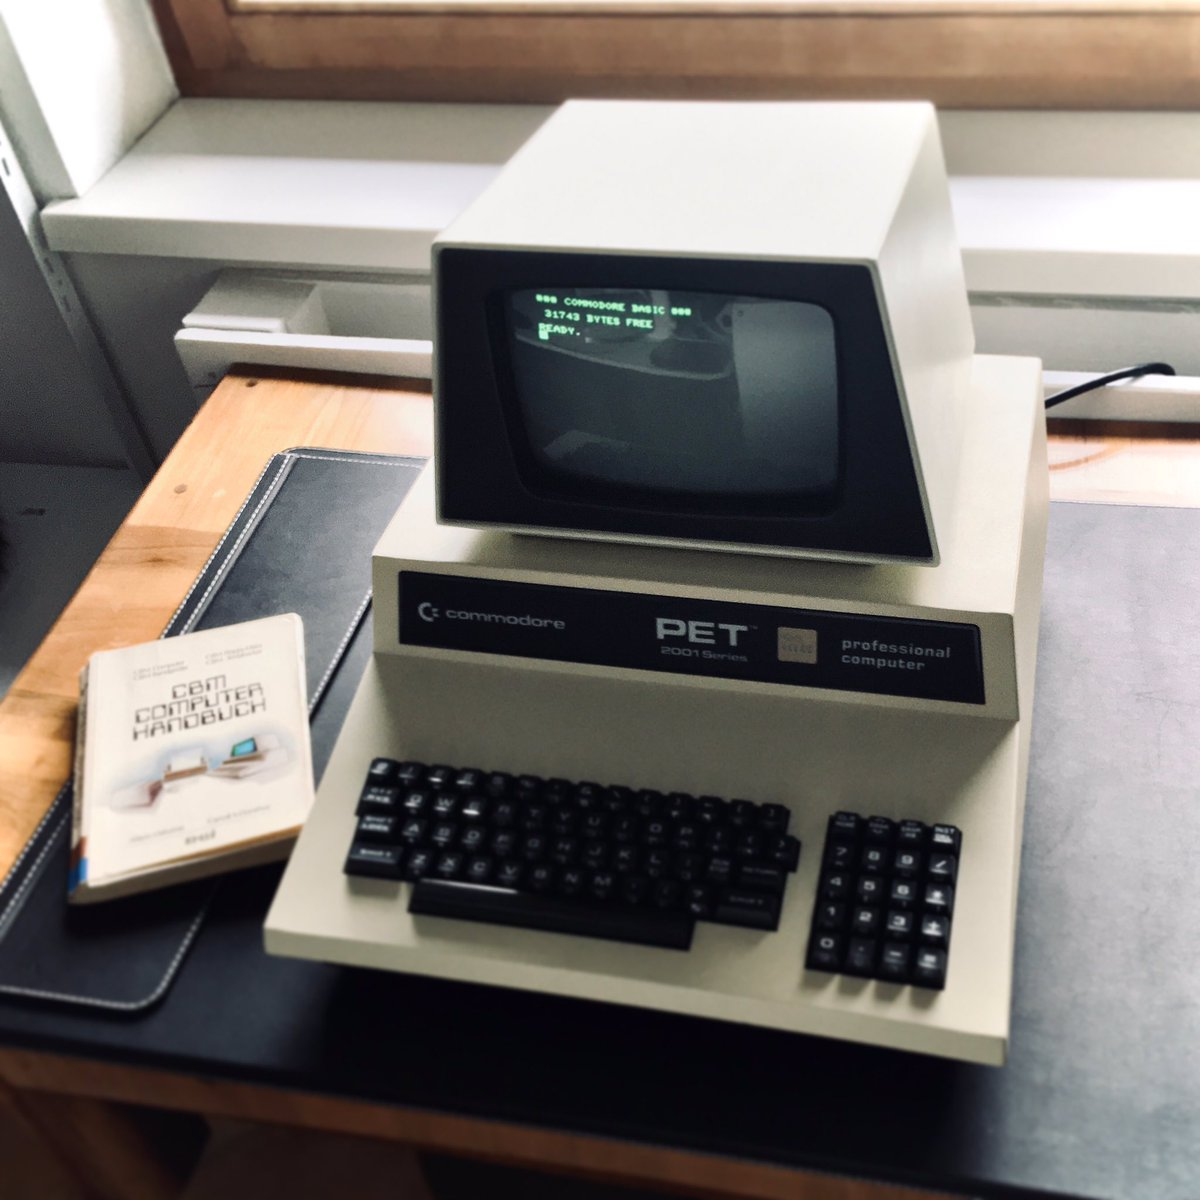 This Commodore PET finally found a new home! It works and it's gorgeous! #vintagecomputing #commodore #PET pic.twitter.com/9Yzj9GZwfK